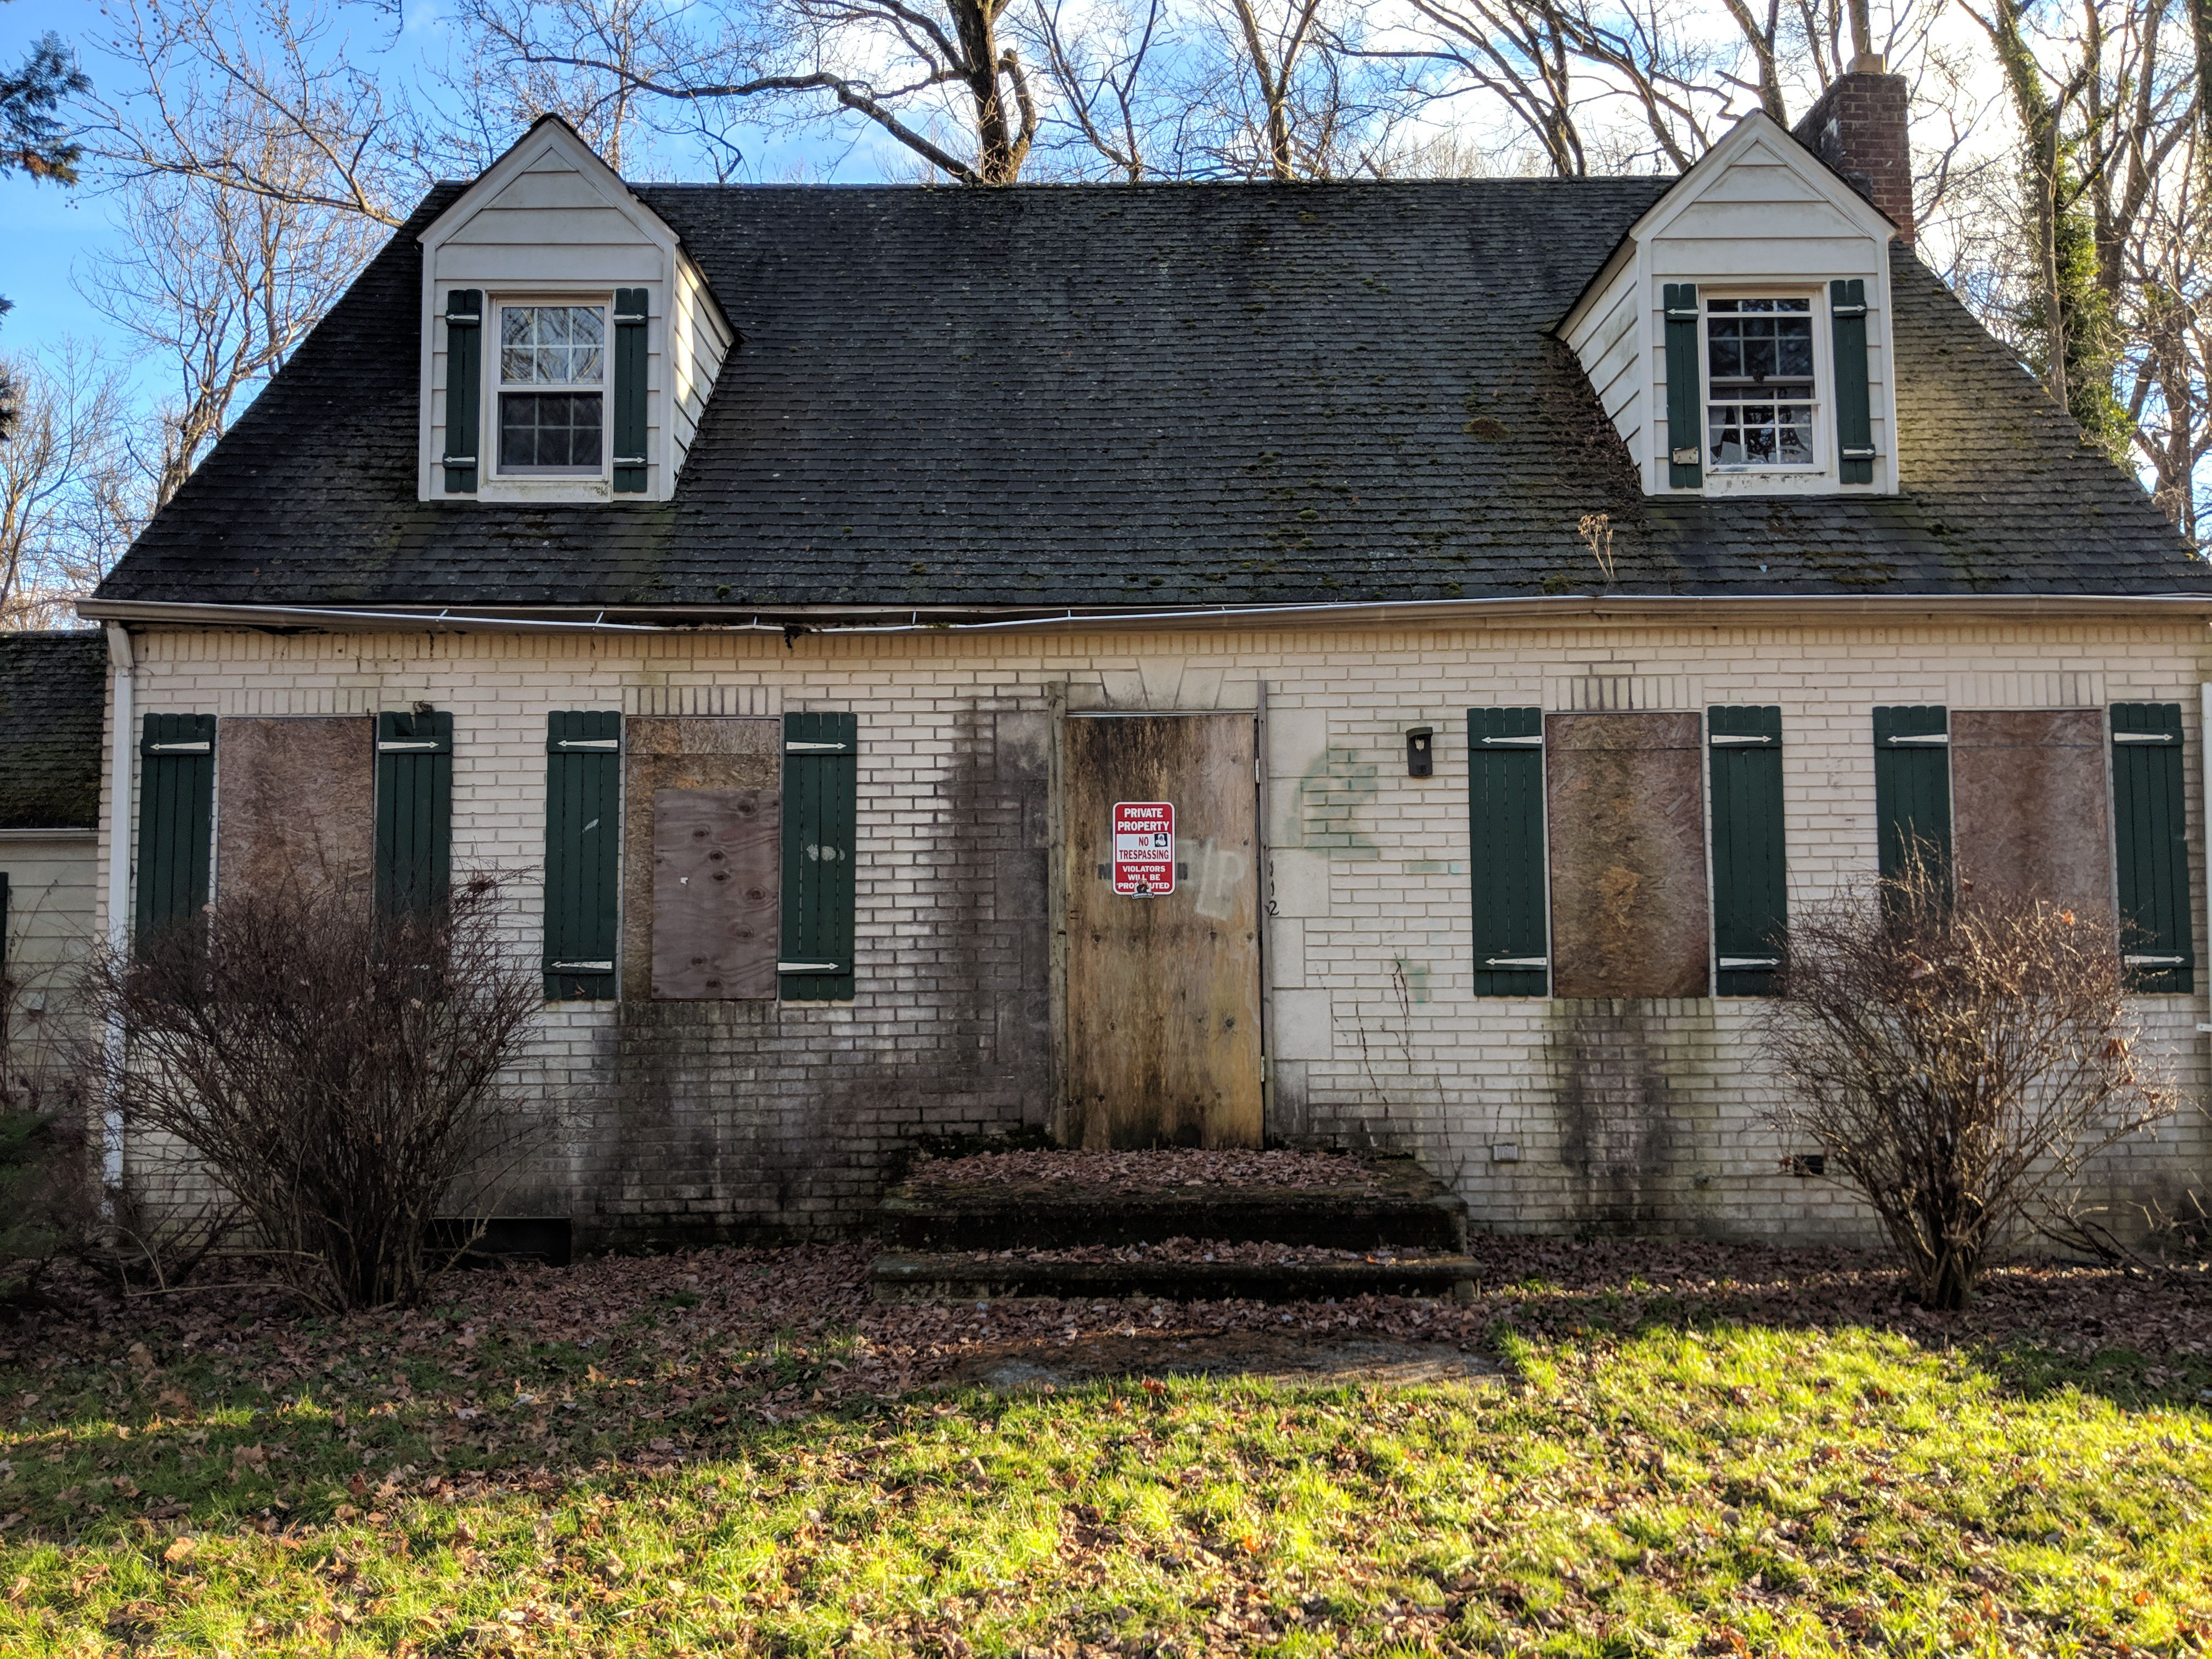 Abandoned House Won T Be An Eyesore Anymore County Just Bought It For 515k Nj Com